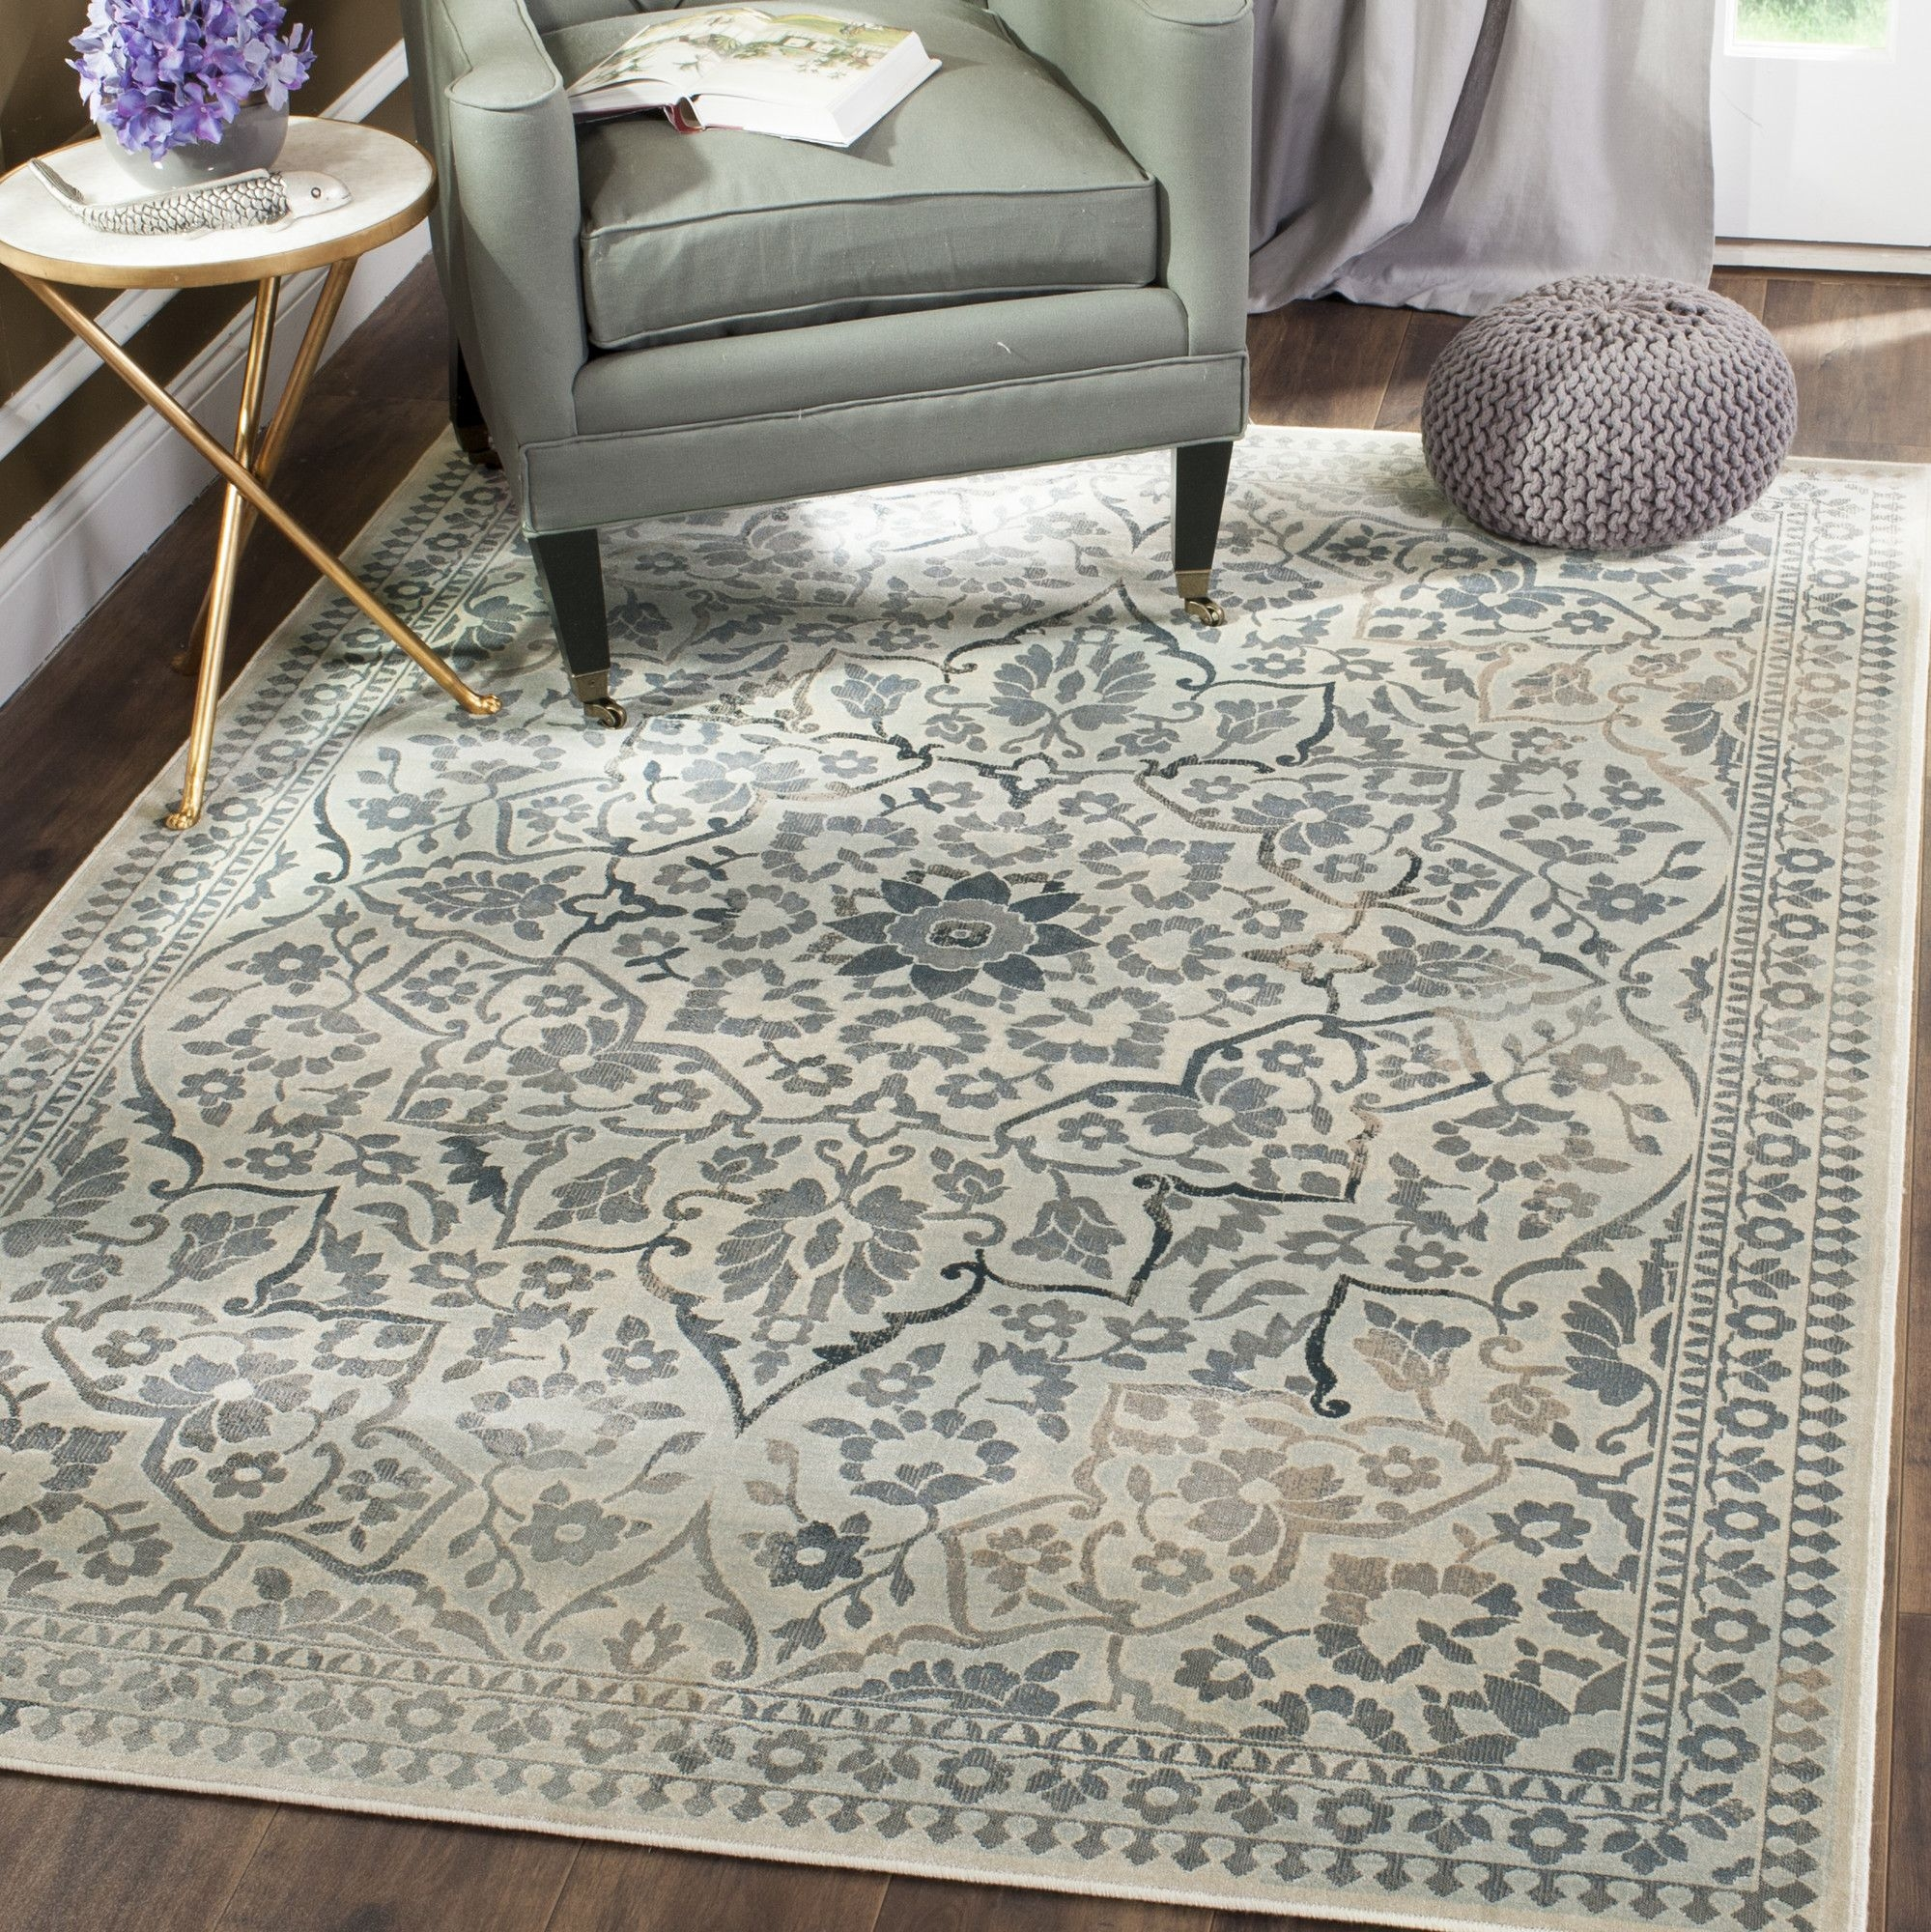 Malakoff Creamlight Blue Area Rug Products Pinterest Light Inside Light Blue And Cream Rugs (Image 8 of 15)